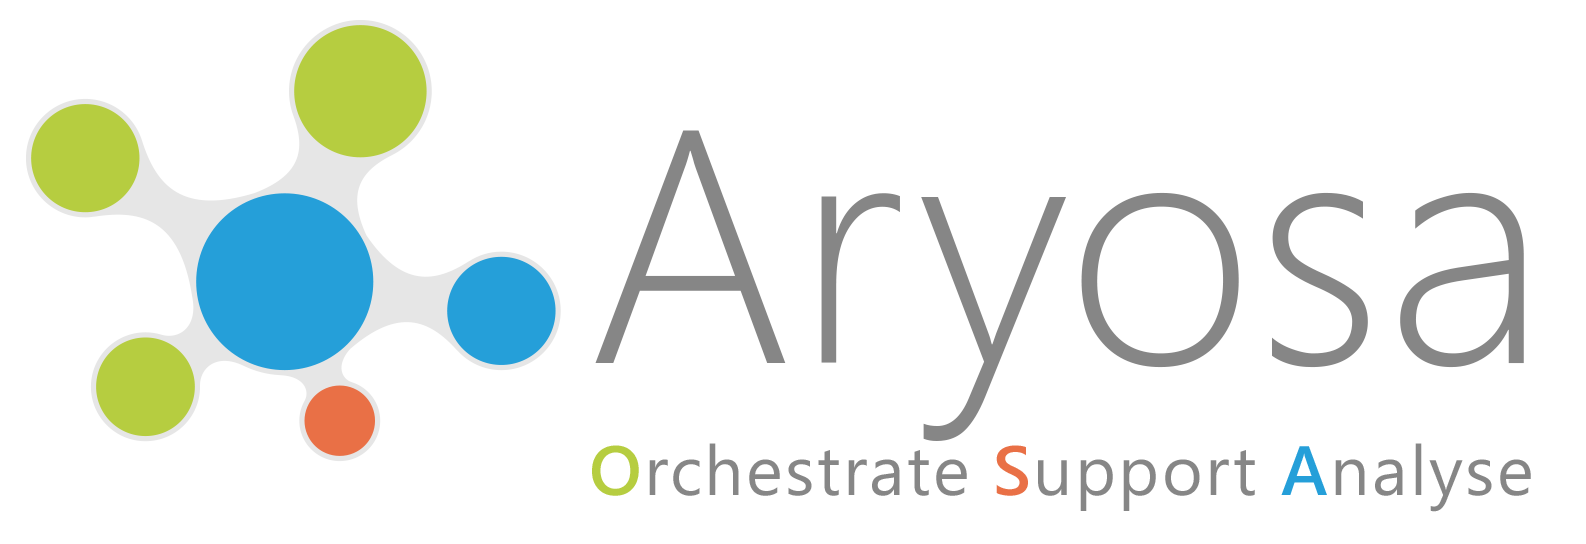 Aryosa Logo Transparent